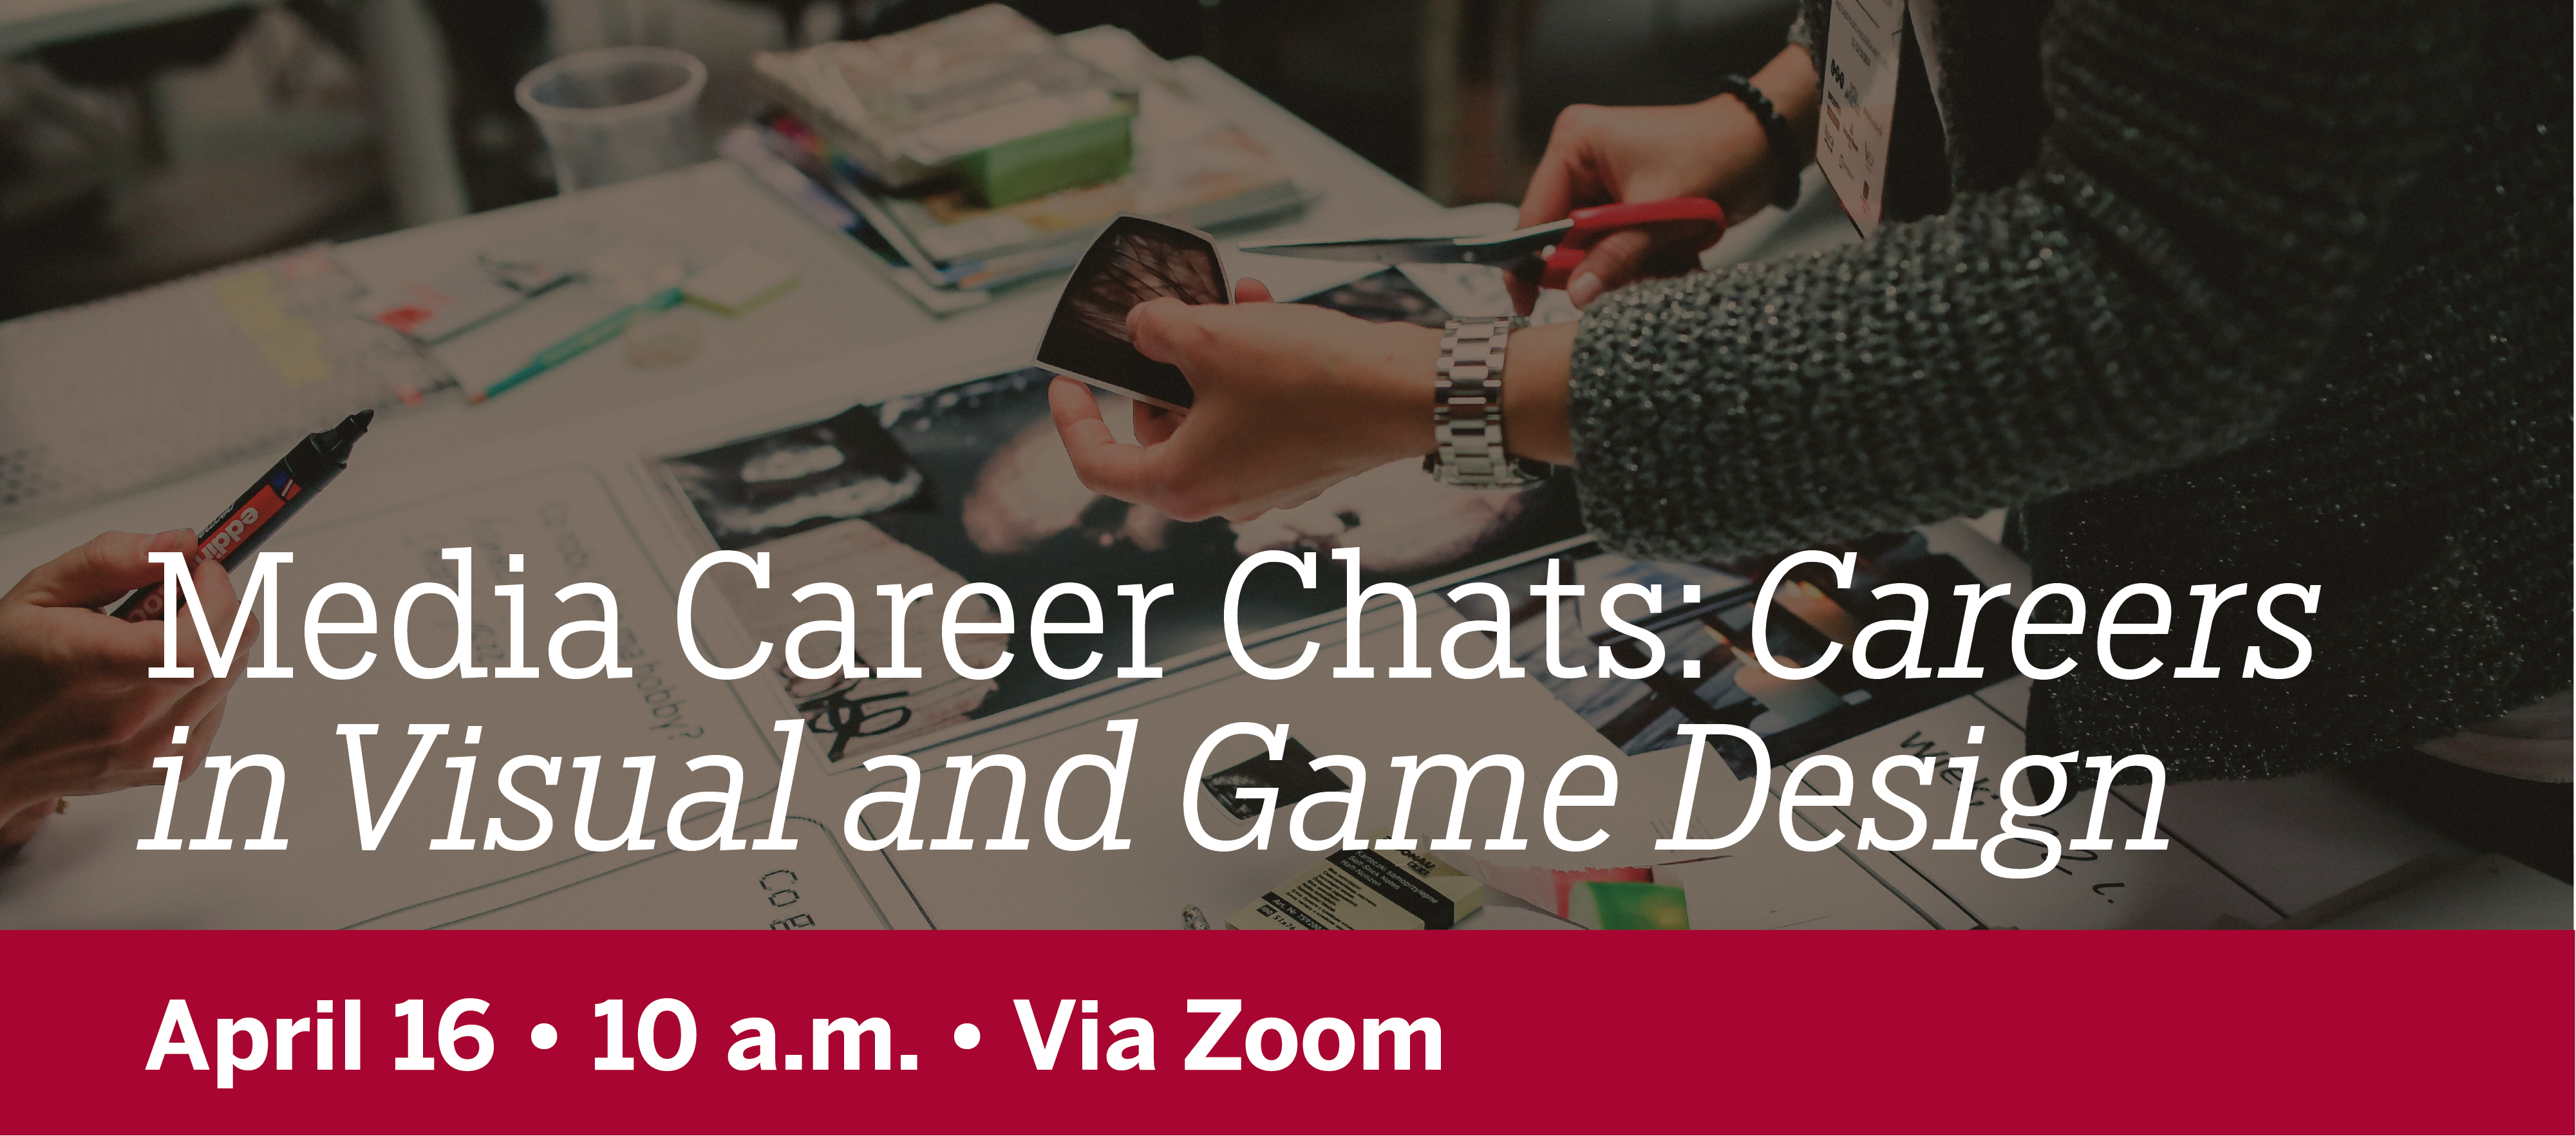 Media Career Chats Careers in Visual and Game Design